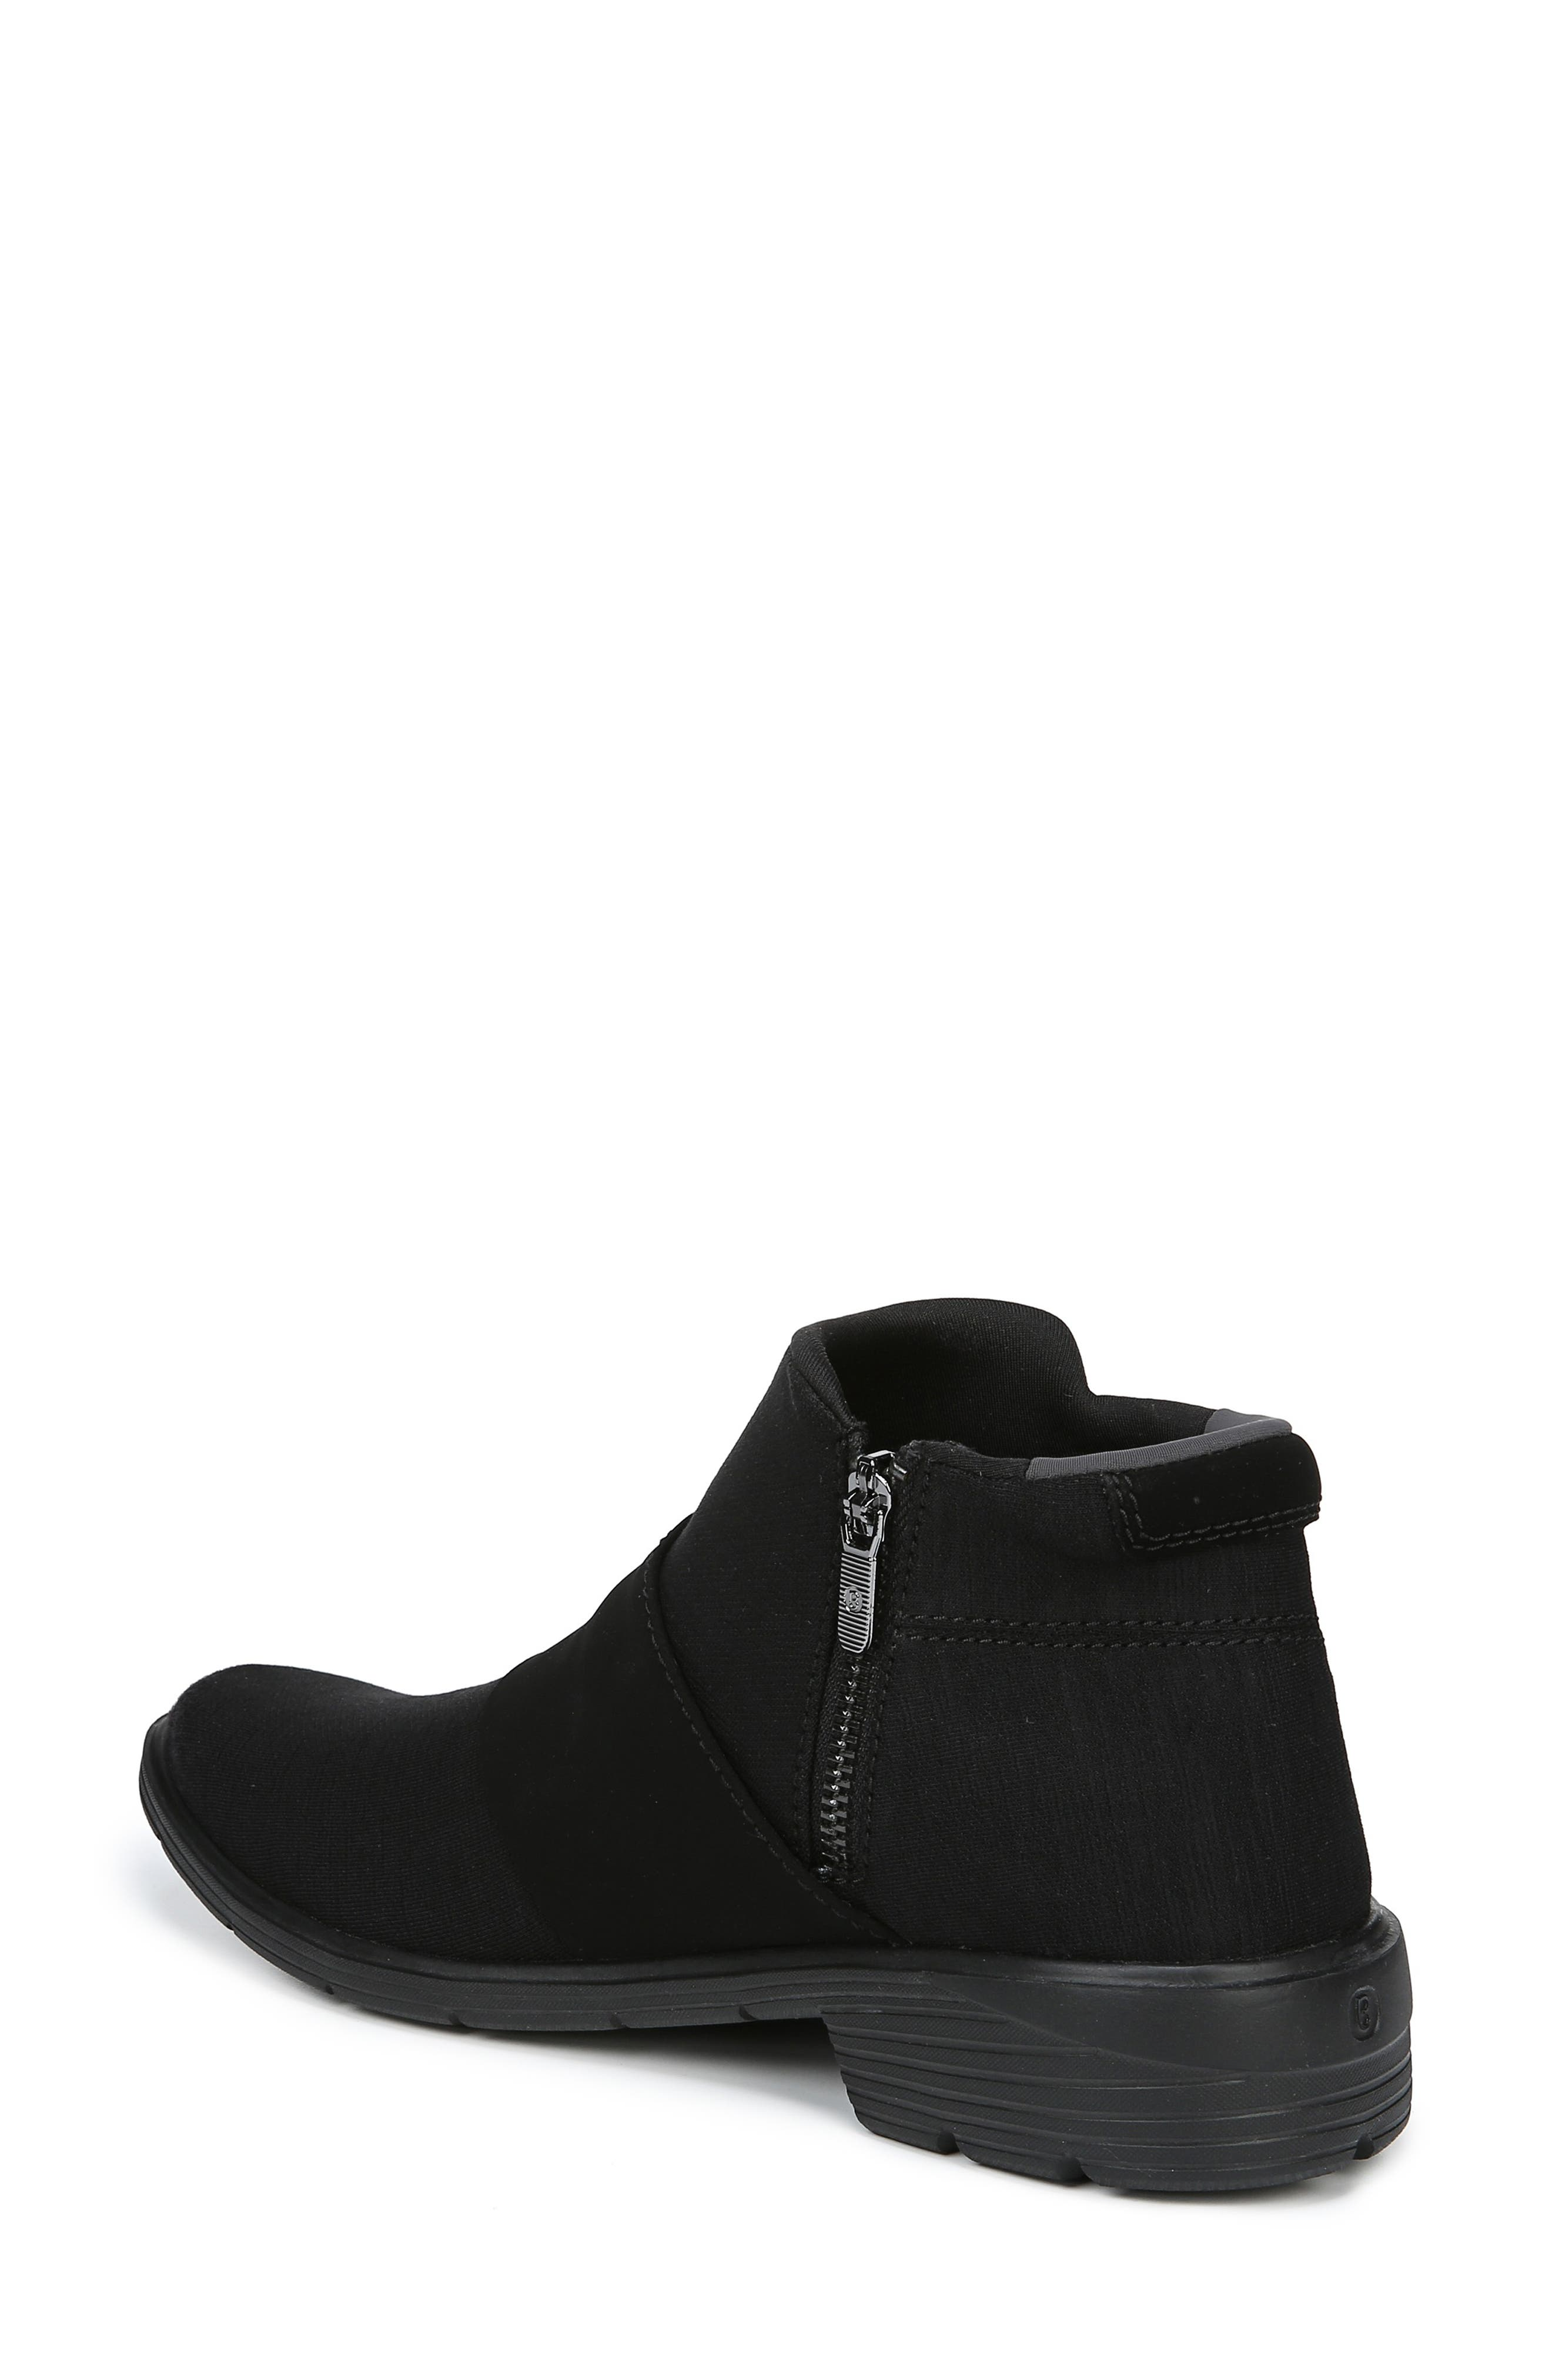 Billie Bootie,                             Alternate thumbnail 2, color,                             BLACK THICK HEATHER FABRIC